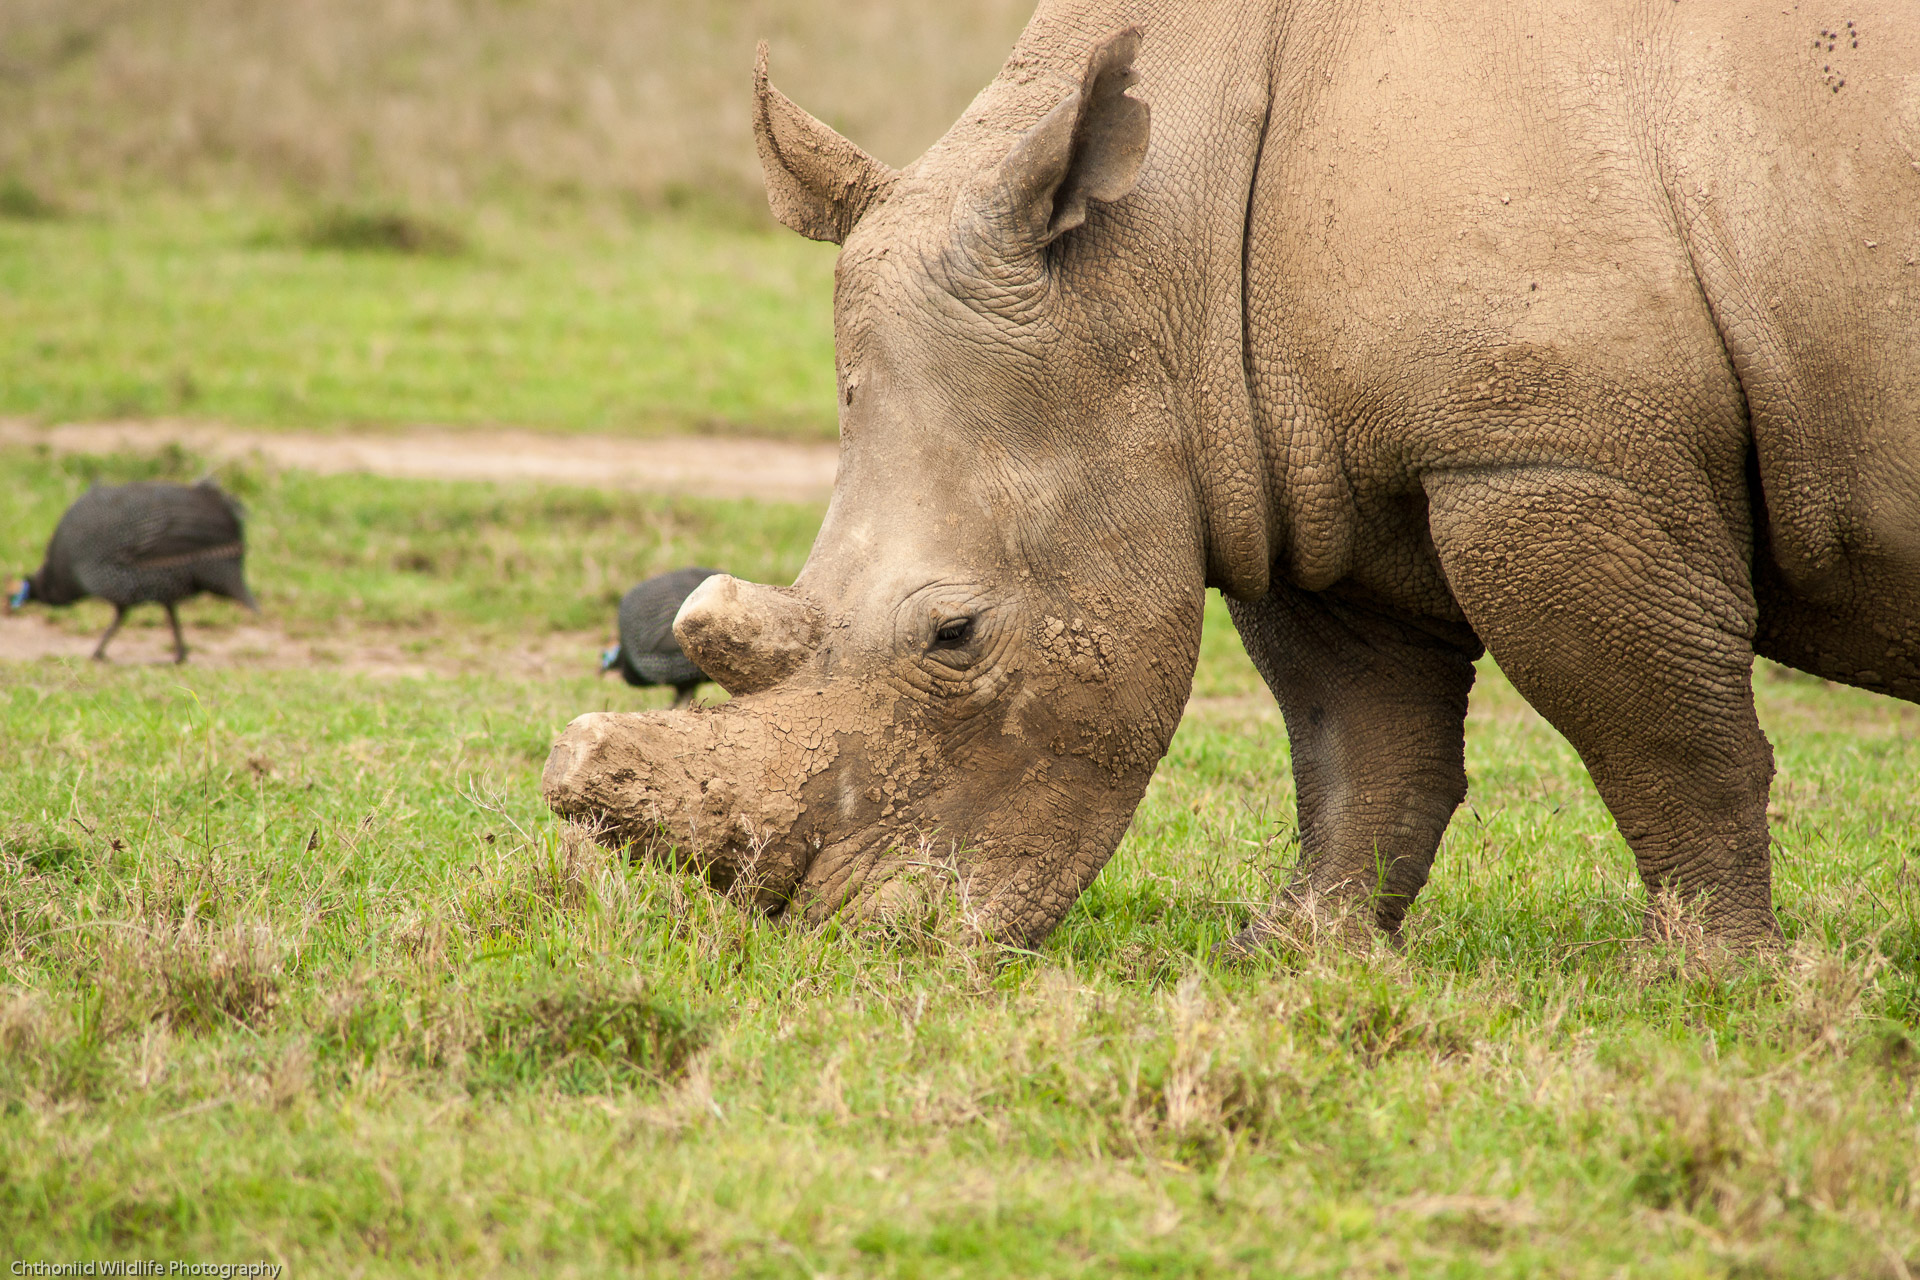 Featured image: Rhino conservation dilemmas